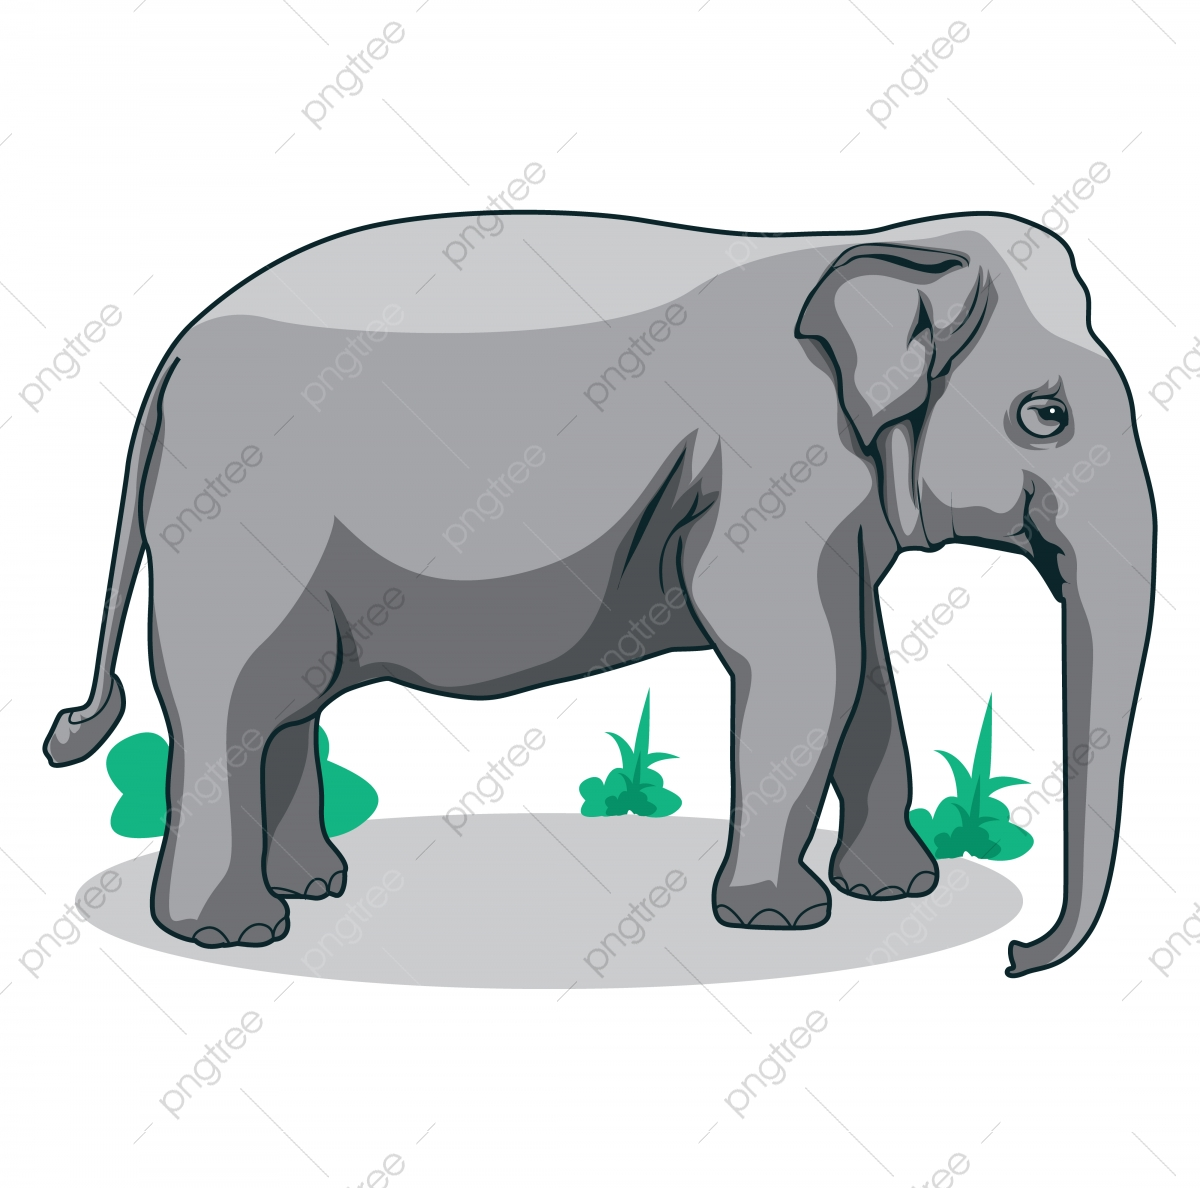 Elephant Vector Png Vector Psd And Clipart With Transparent Background For Free Download Pngtree Choose from over a million free vectors, clipart graphics, vector art images, design templates, and illustrations created by artists worldwide! https pngtree com freepng elephant vector illustration elephant animal wildlife vector art 4354855 html